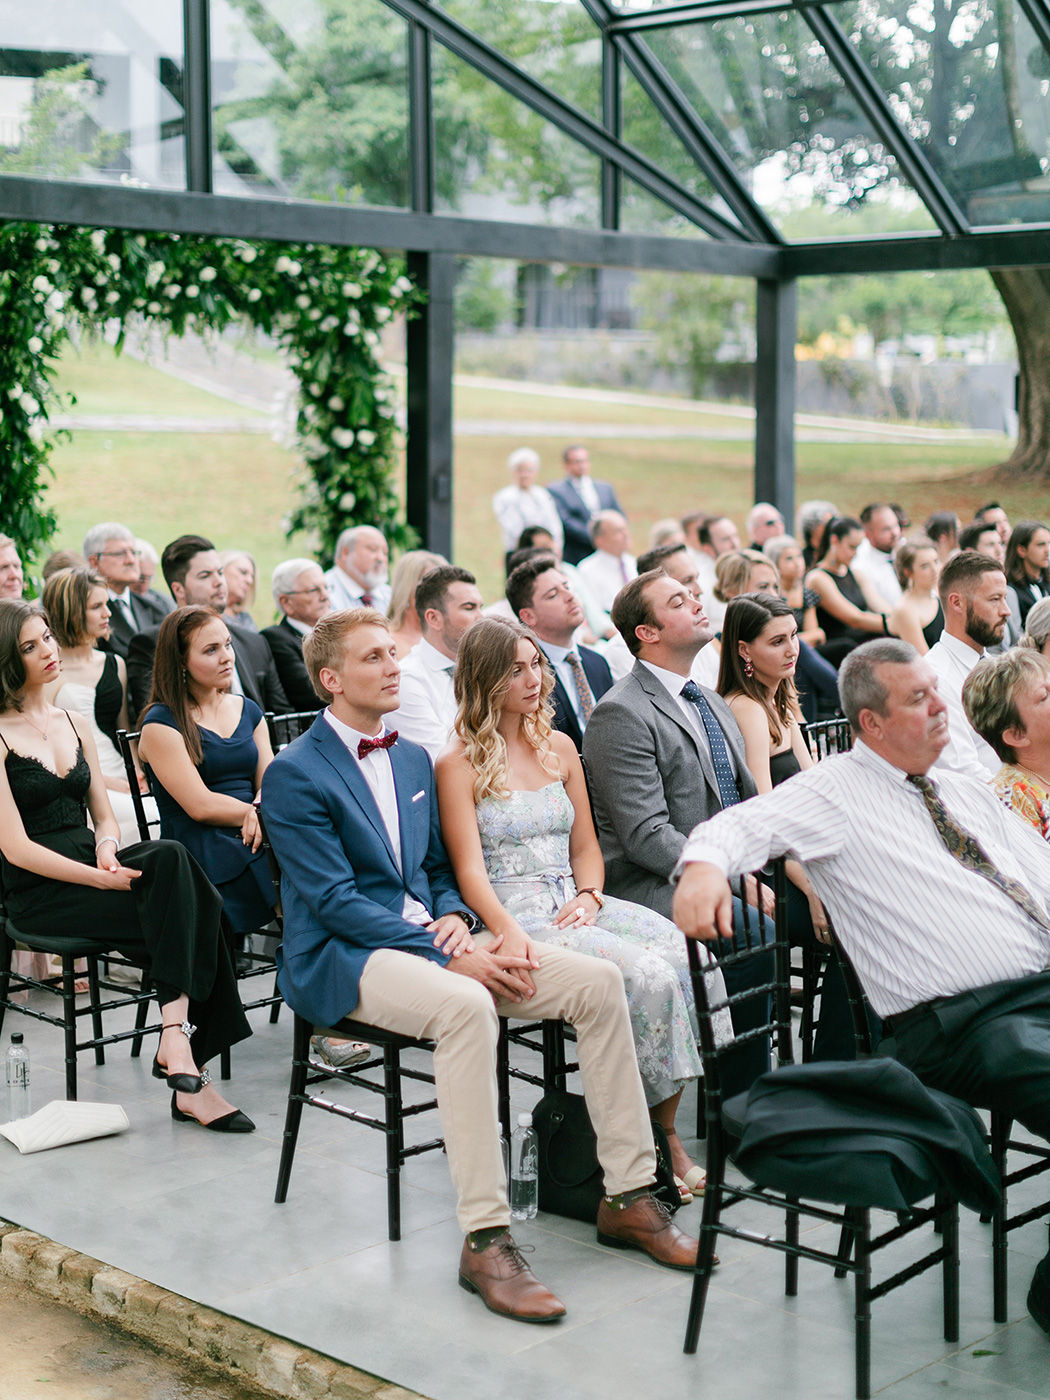 Ceremony | Rensche Mari Photography